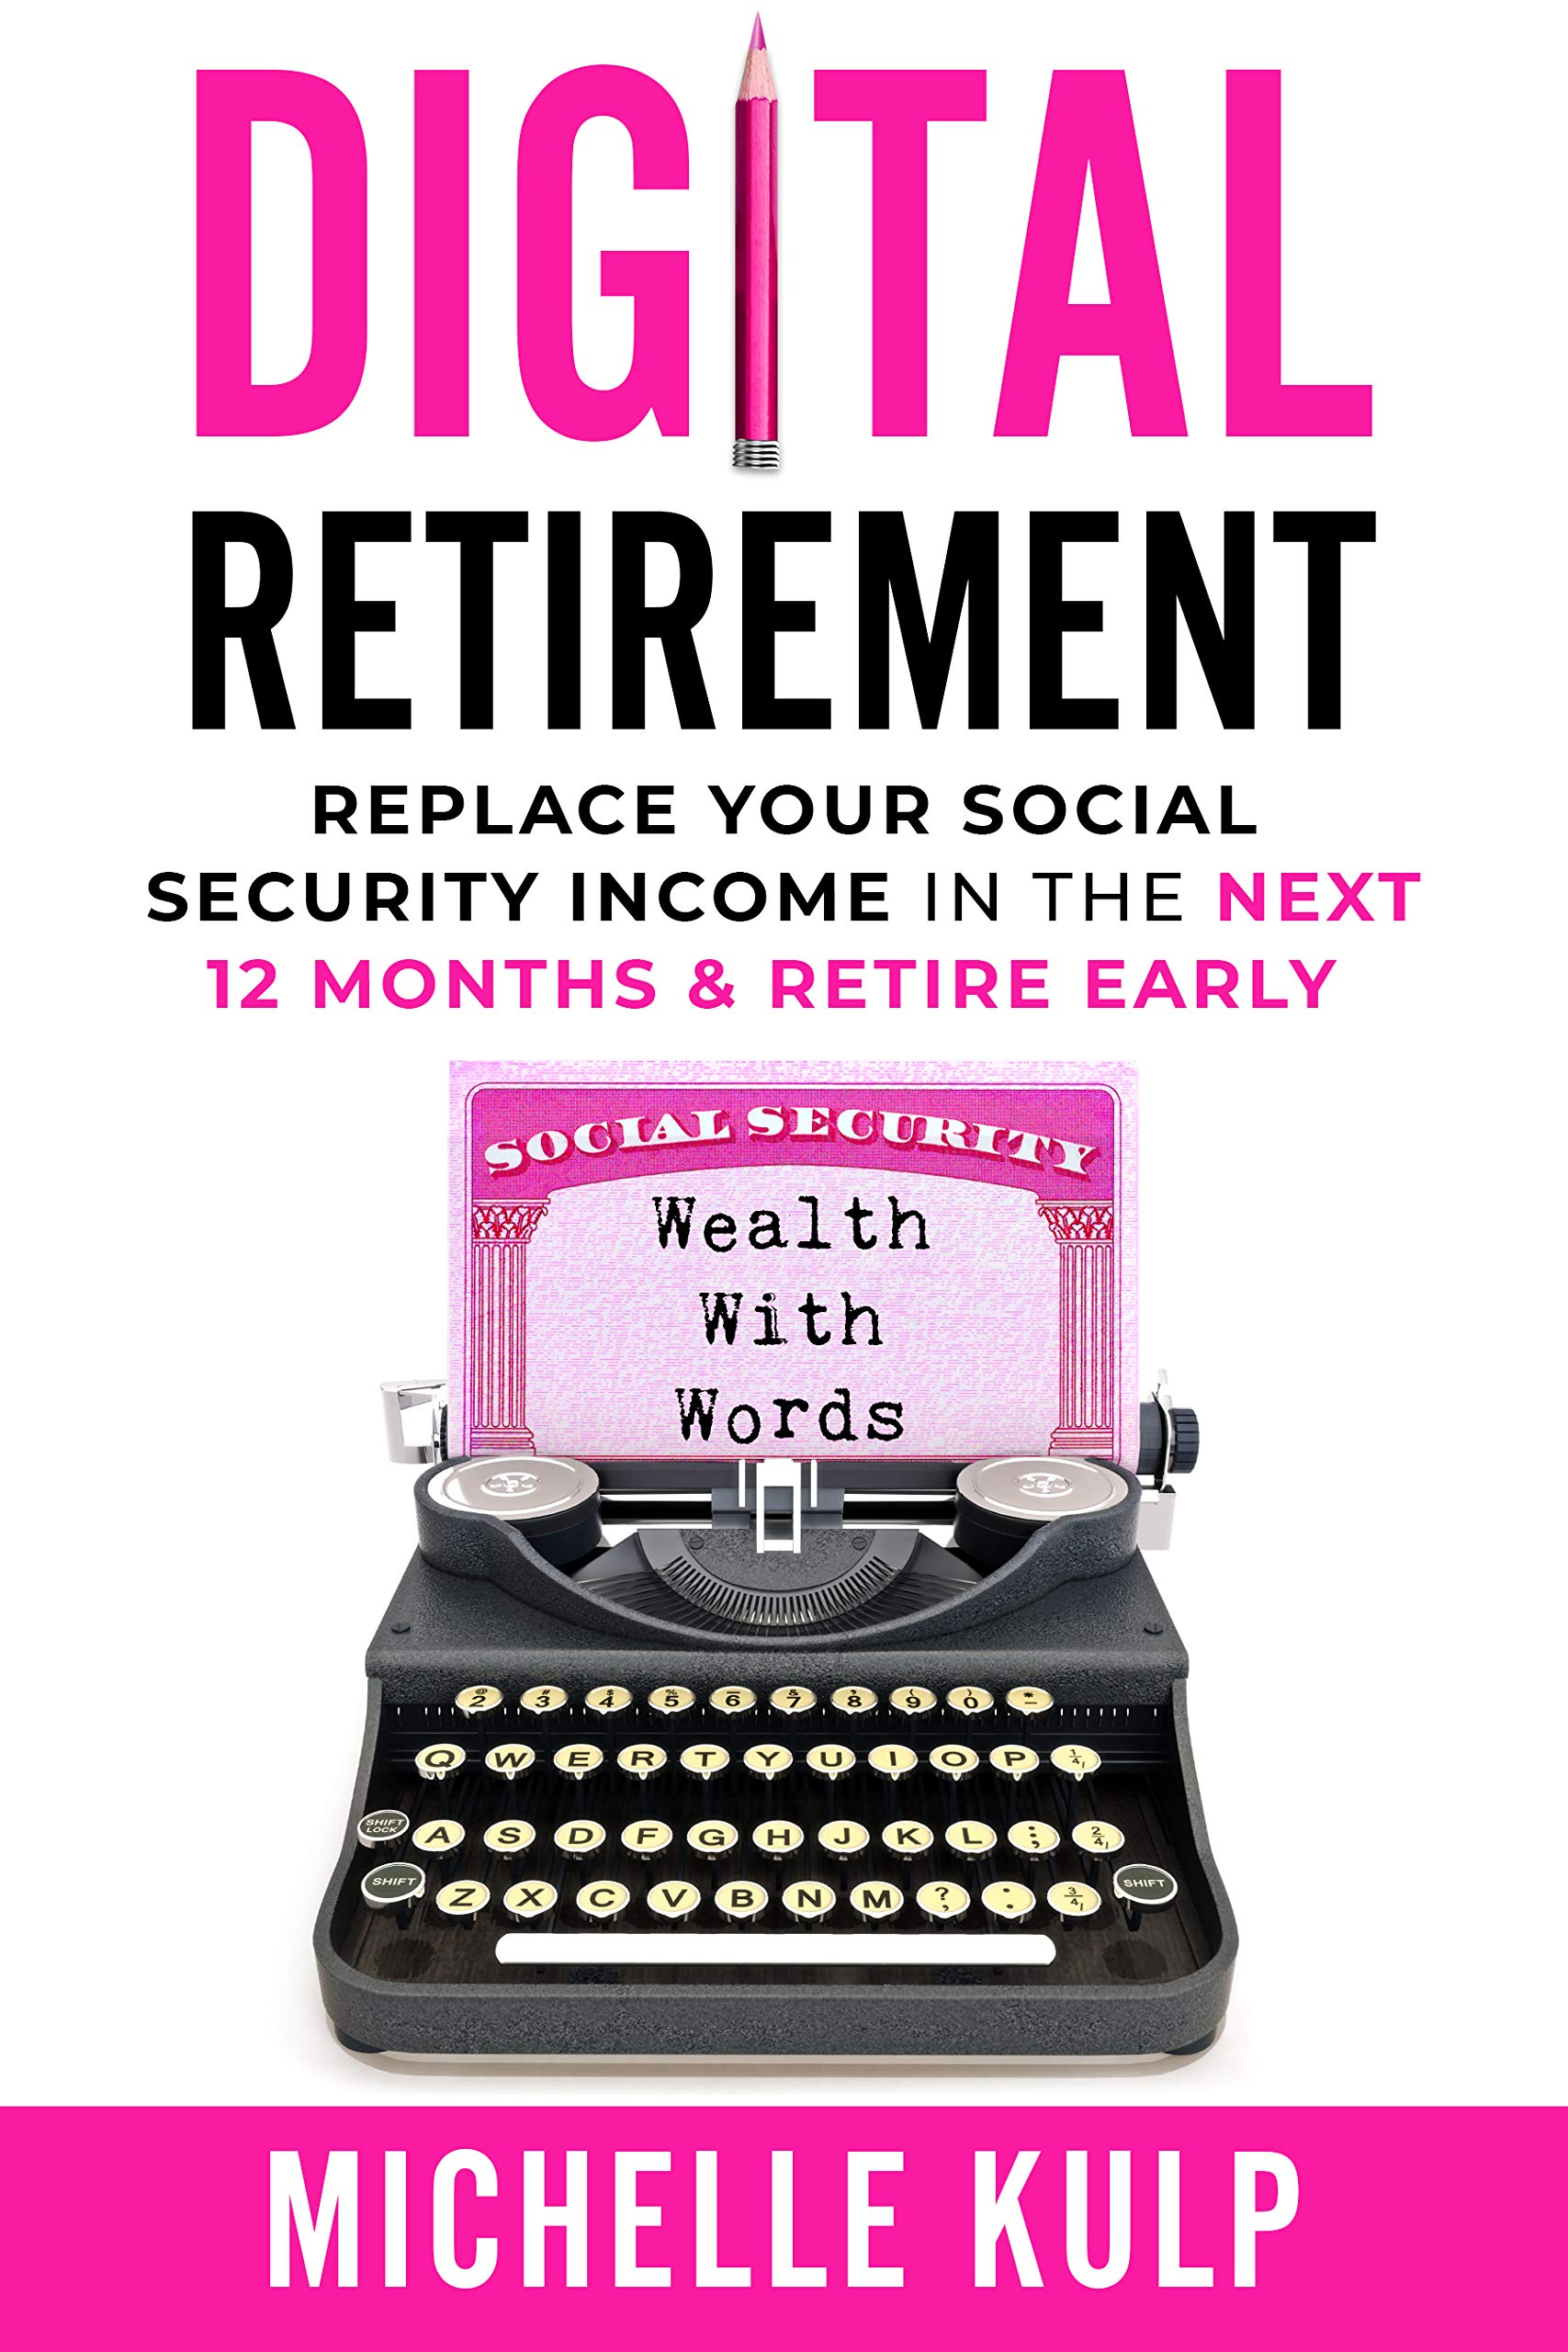 Digital Retirement: Replace Your Social Security Income In The Next 12 Months & Retire Early